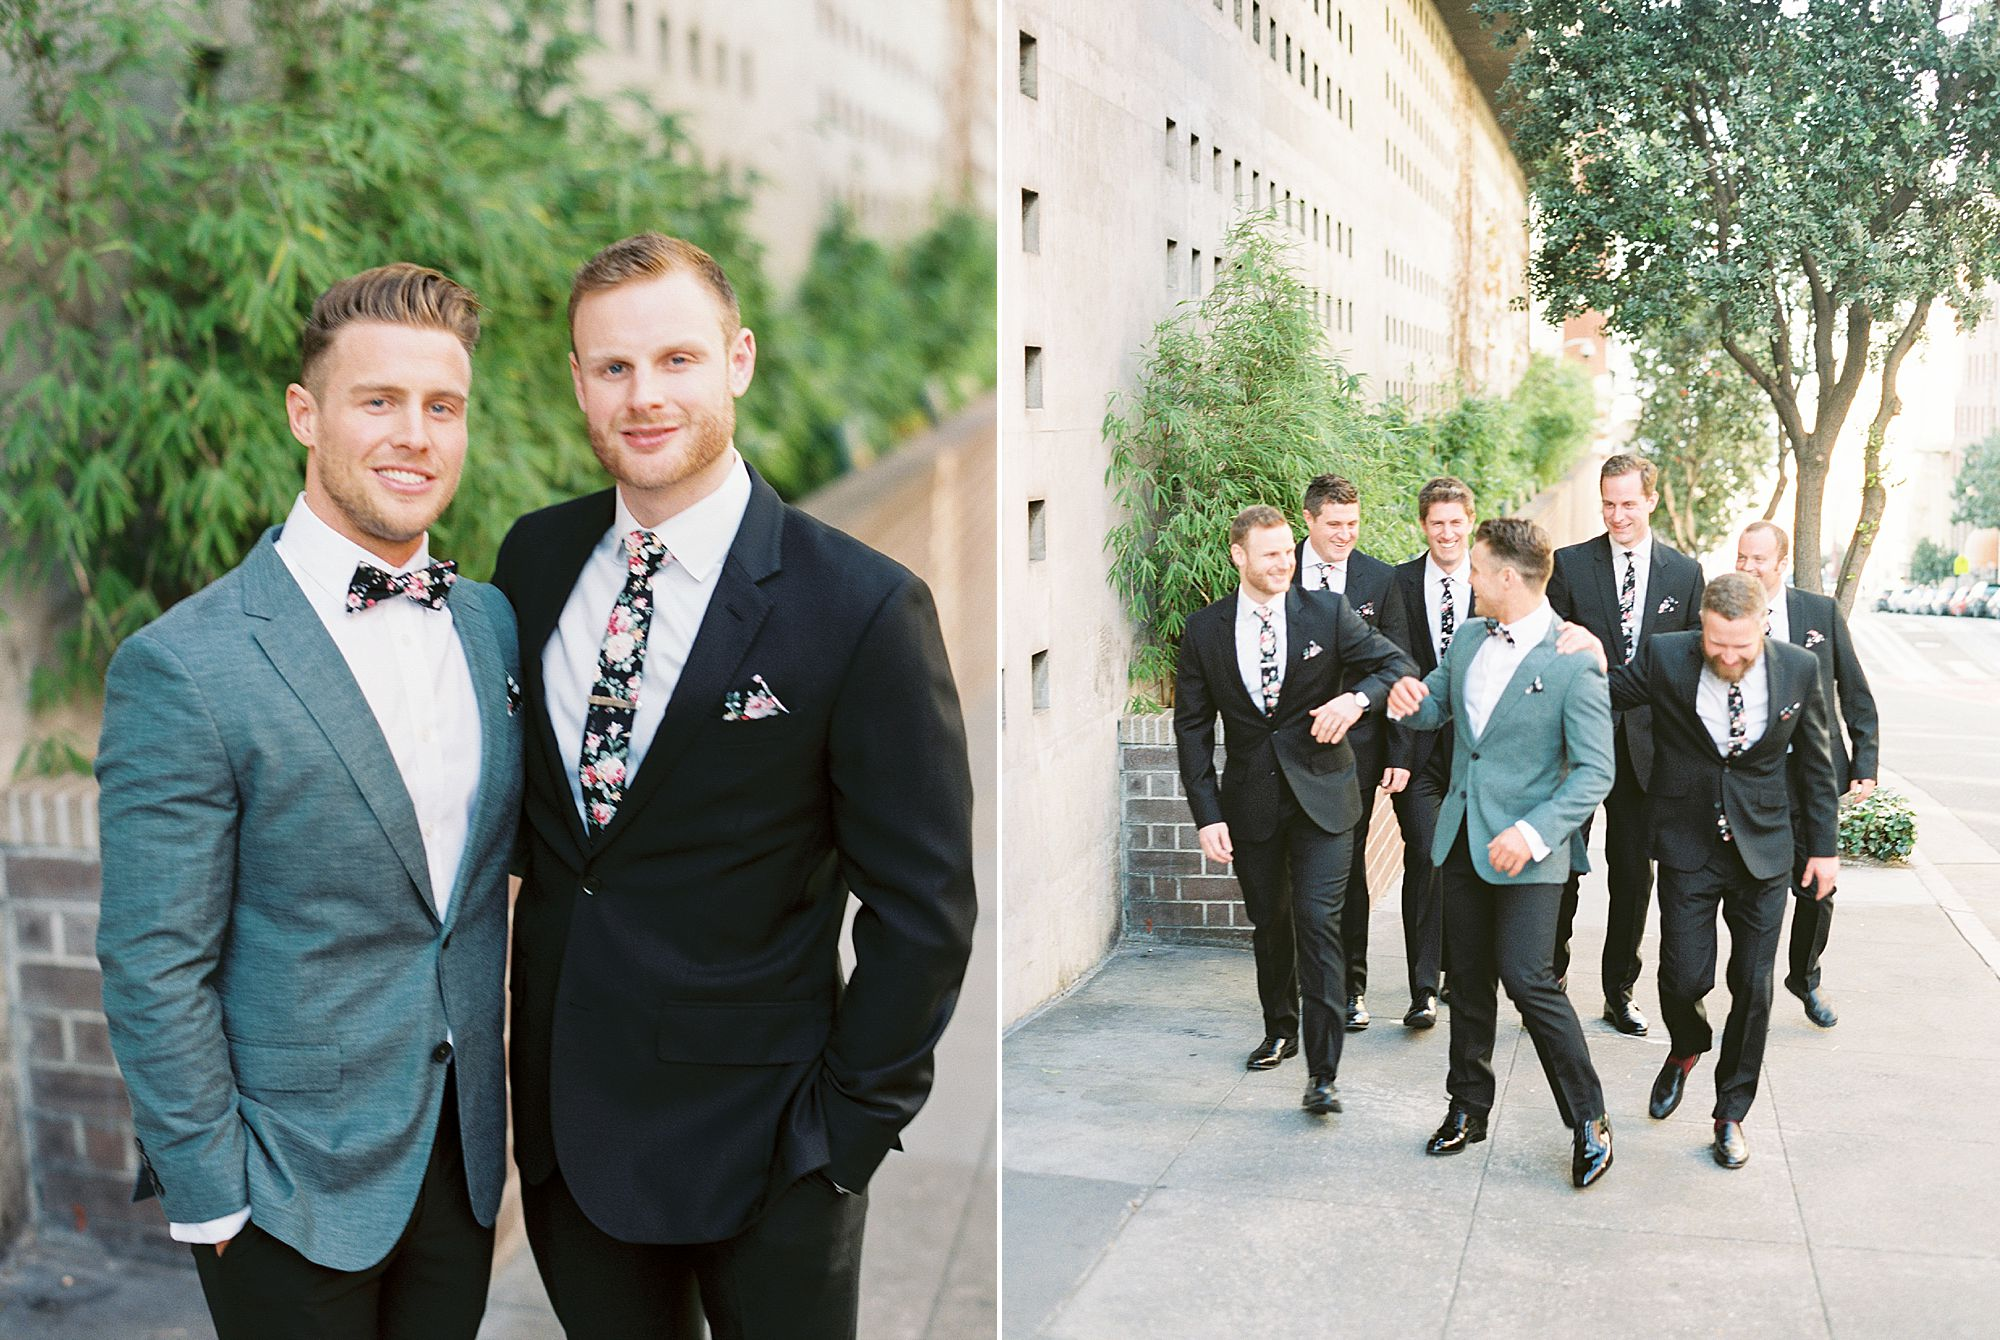 University Club Wedding in San Francisco - Cortney and Jon - San Francisco Wedding - Ashley Baumgartner - SF Wedding Photographer_0062.jpg